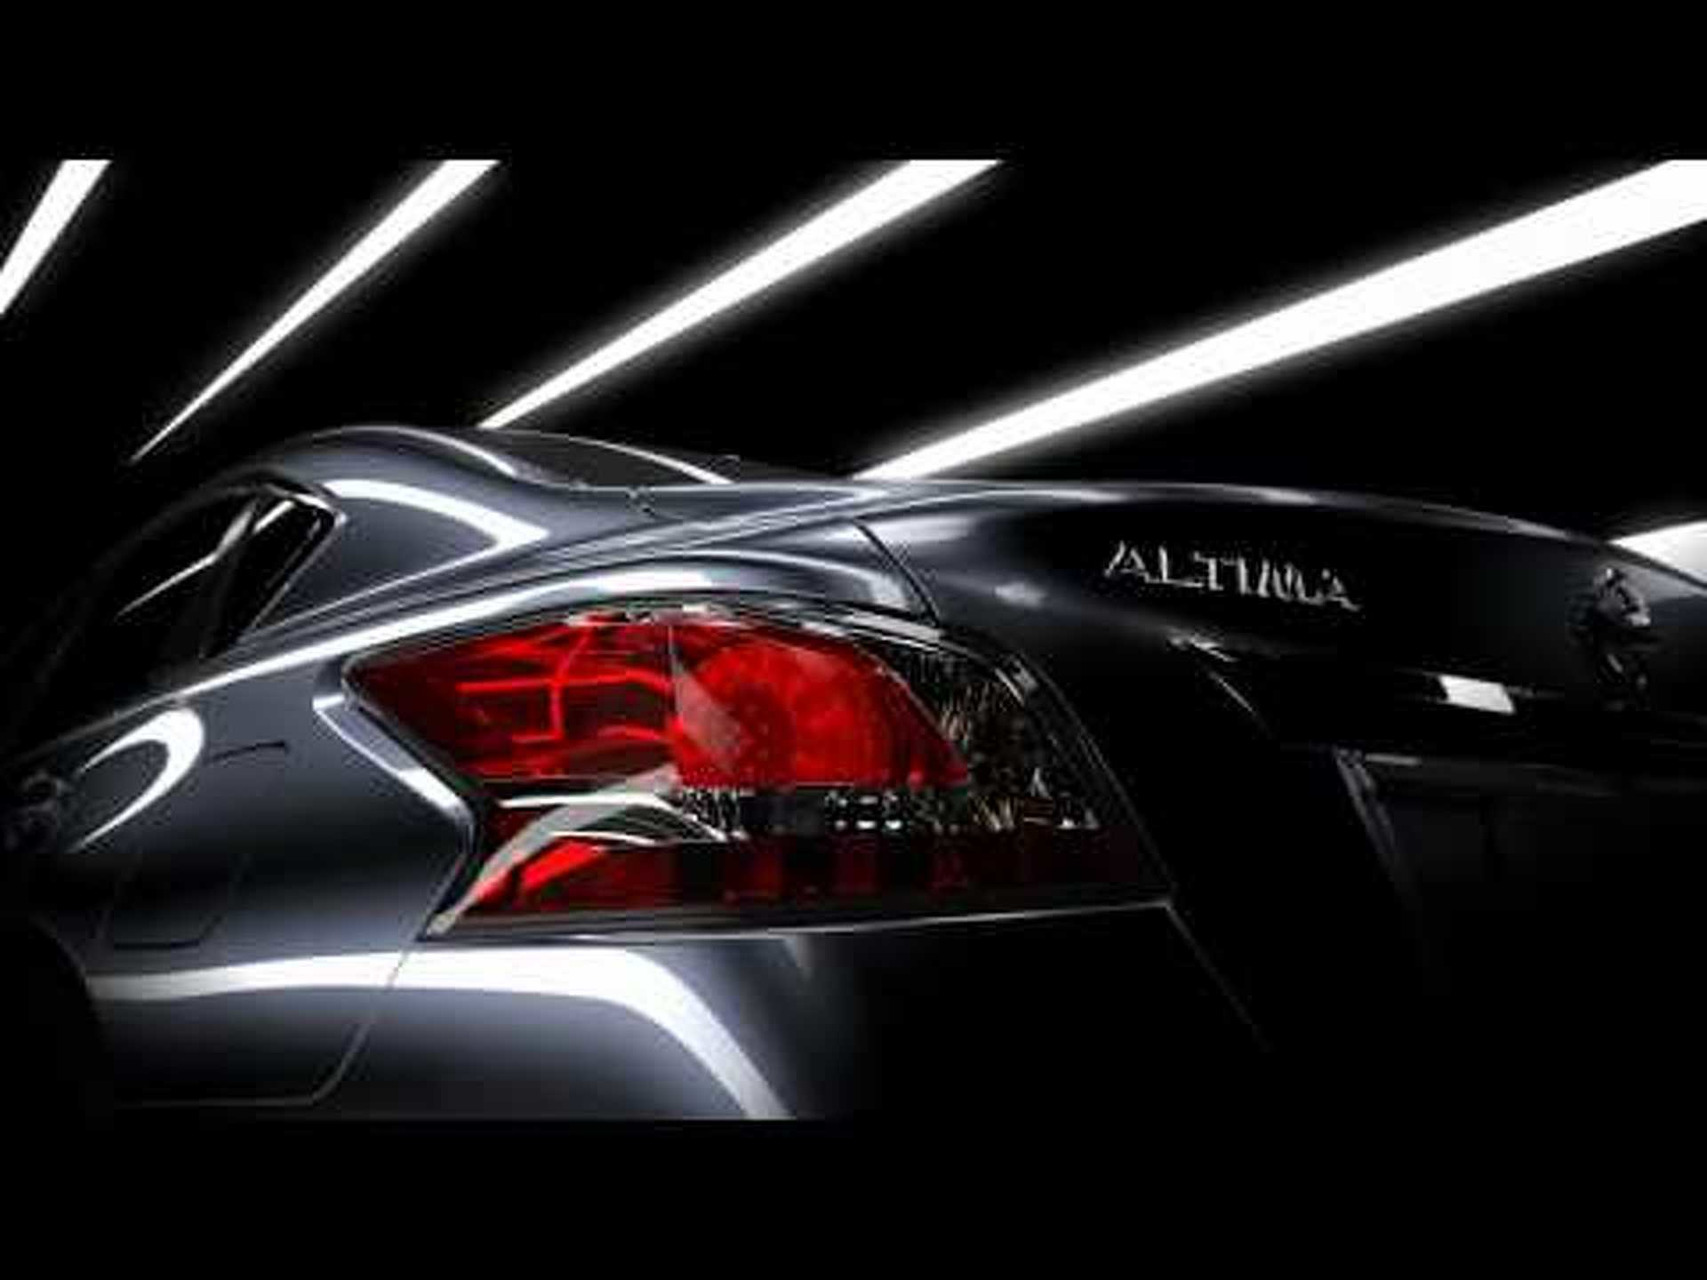 2013 Nissan Altima Teaser - Rear